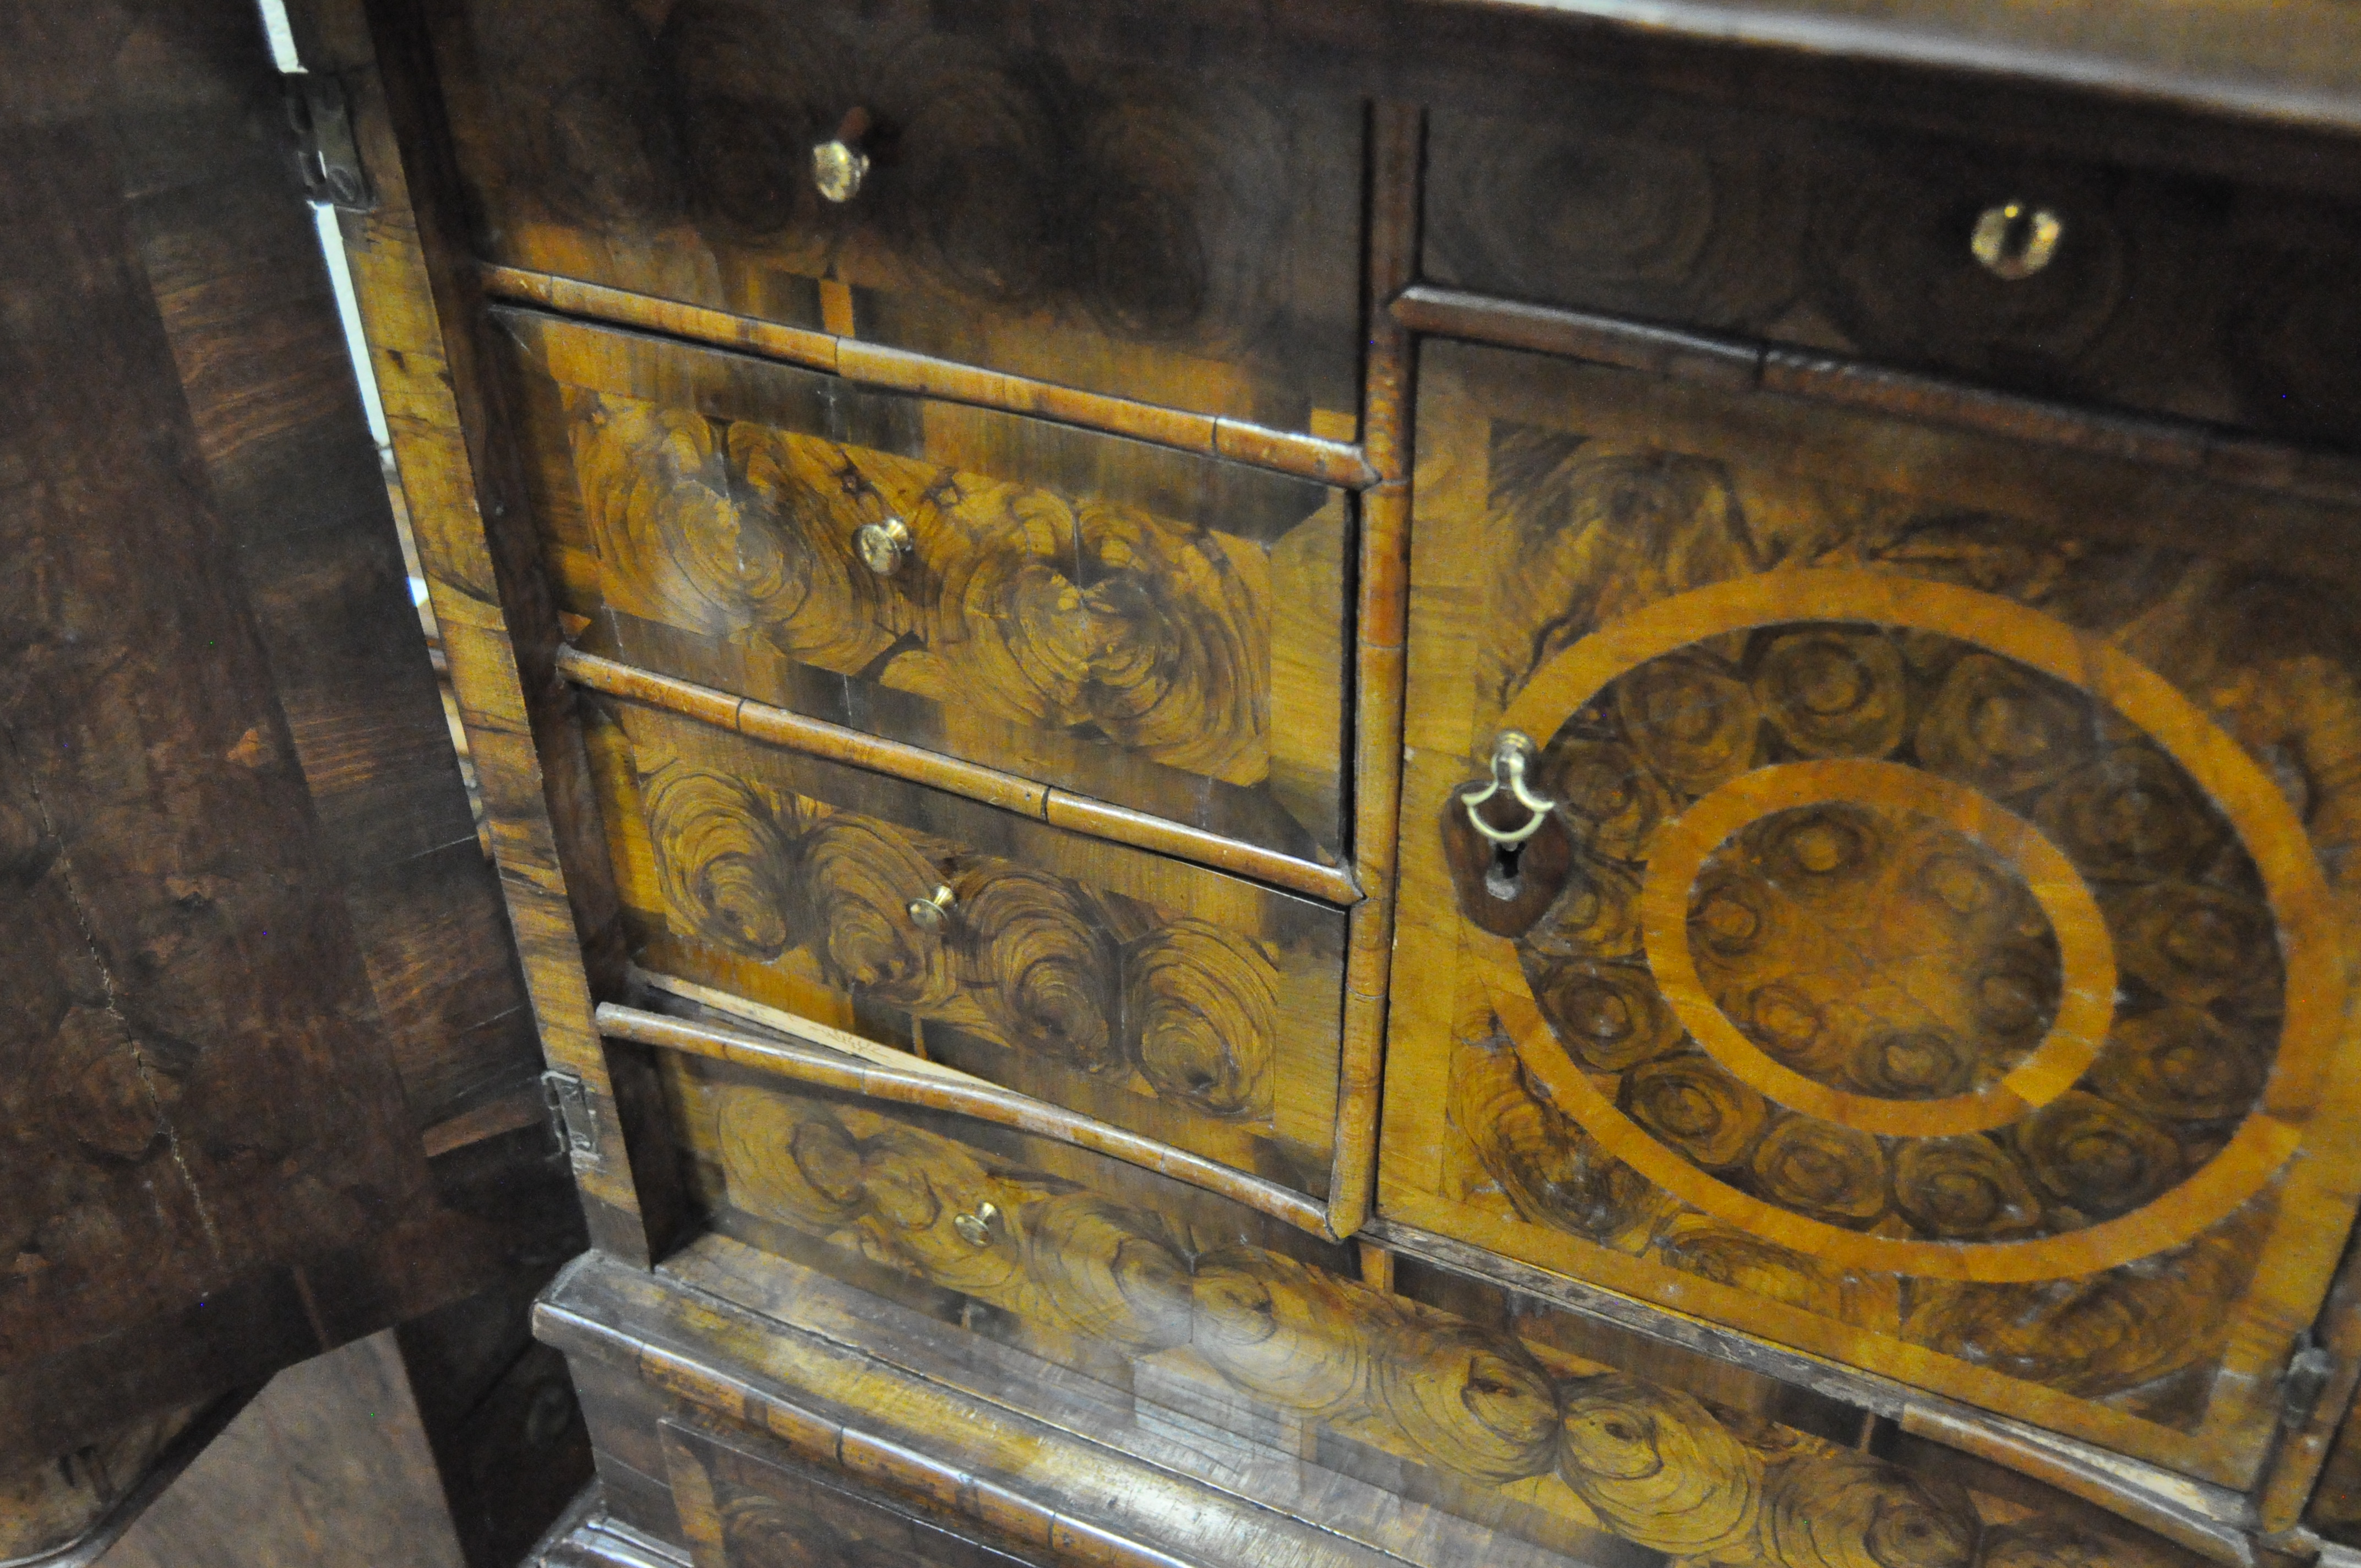 An oyster veneered cabinet on stand, 17th century style but later in date, - Image 17 of 18